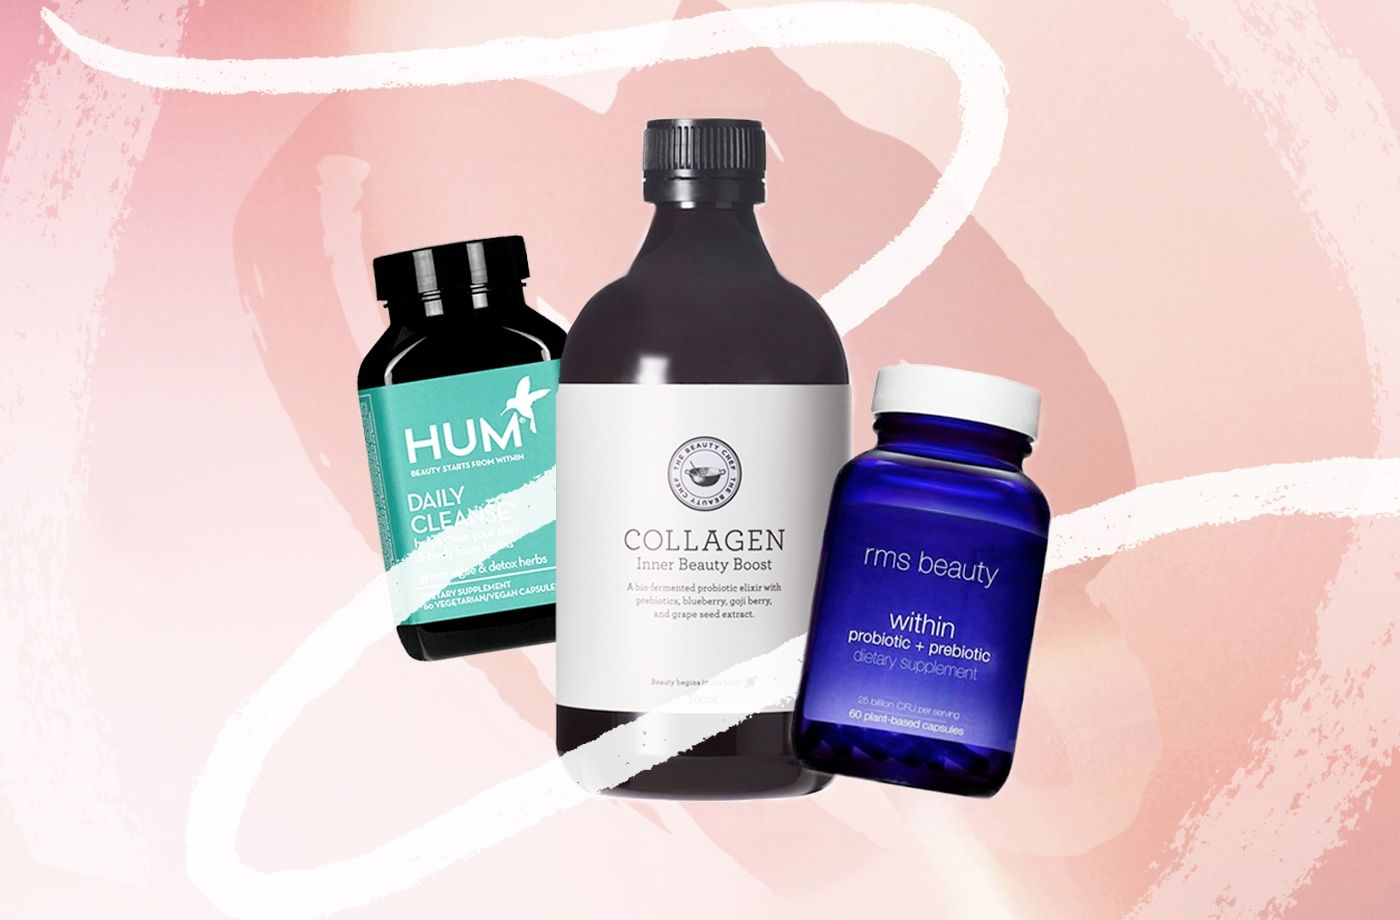 Bluemercury launches beauty supplements program Beauty